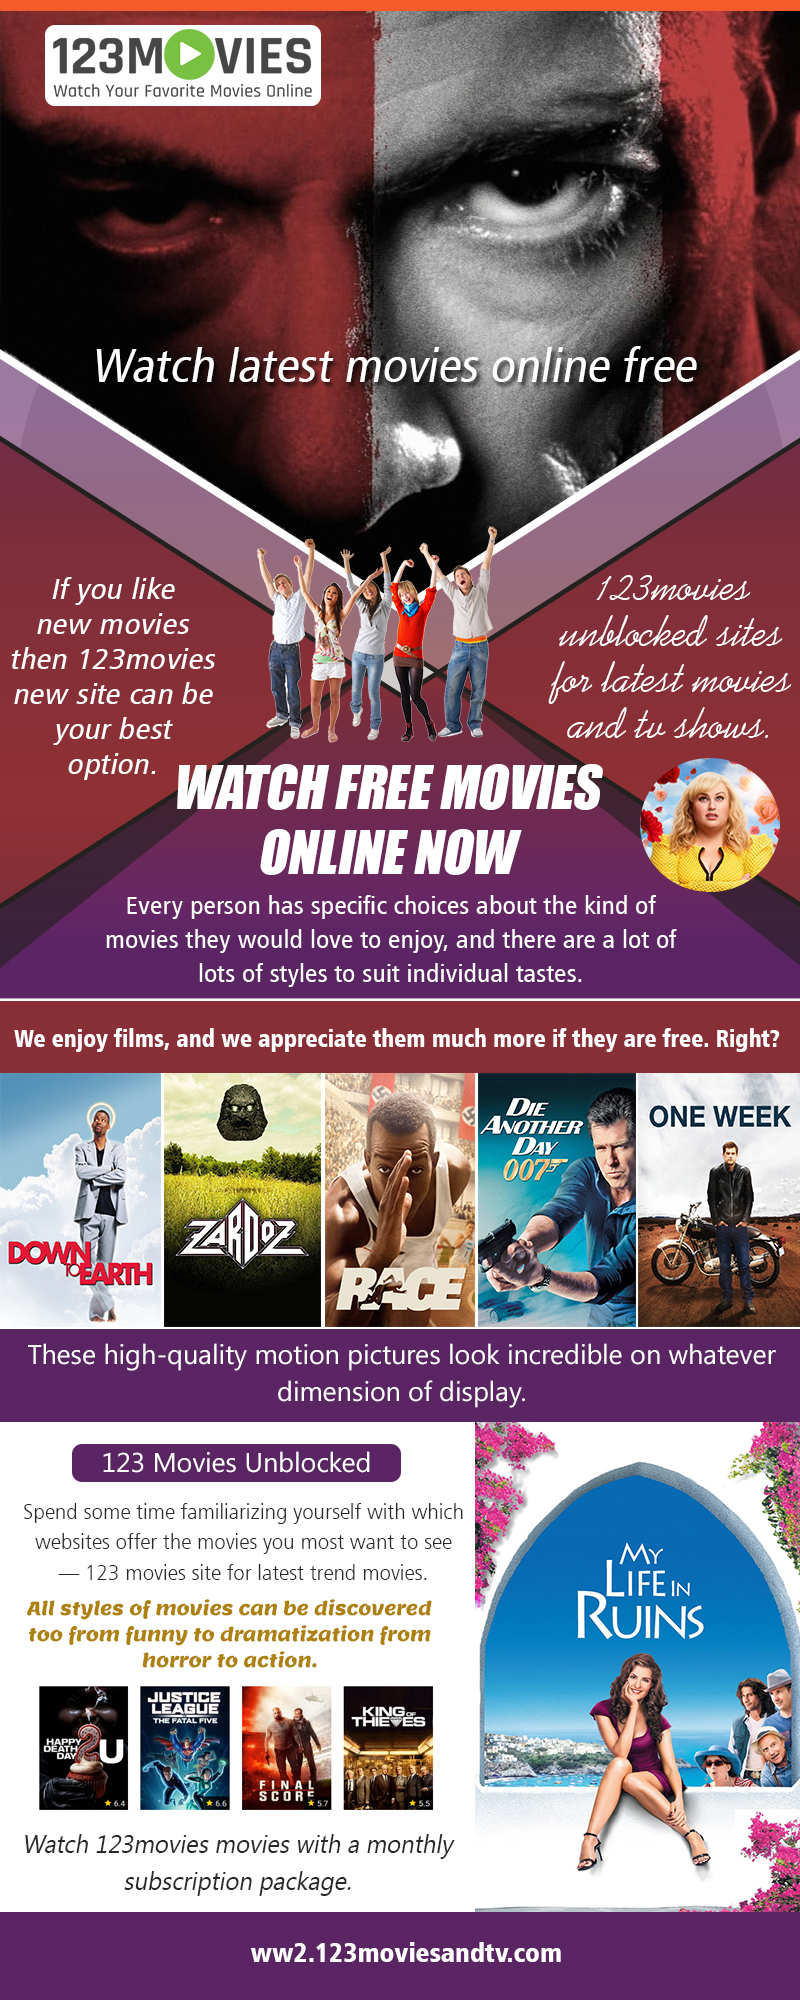 Watch Free Movies Online Now_